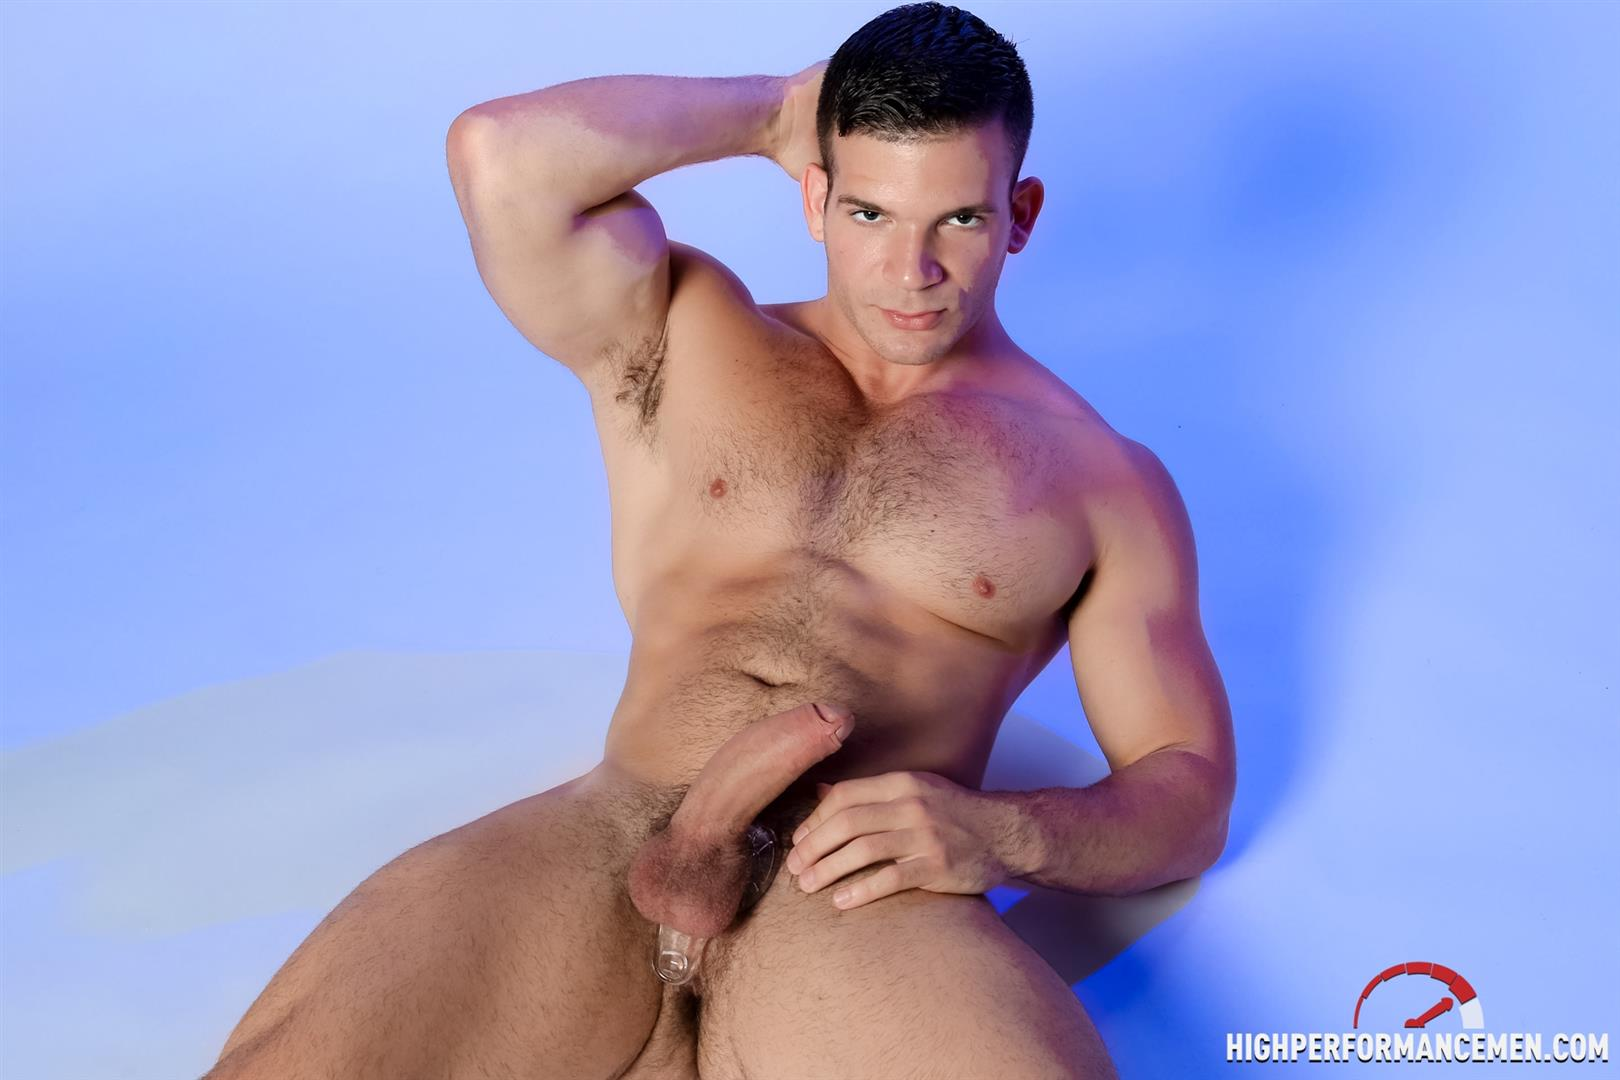 High-Performance-Men-Angel-Rock-Big-Uncut-Cock-Jerking-Off-Latino-Amateur-Gay-Porn-14 Muscle Hunk Angel Rock Jerking Off His Big Uncut Cock